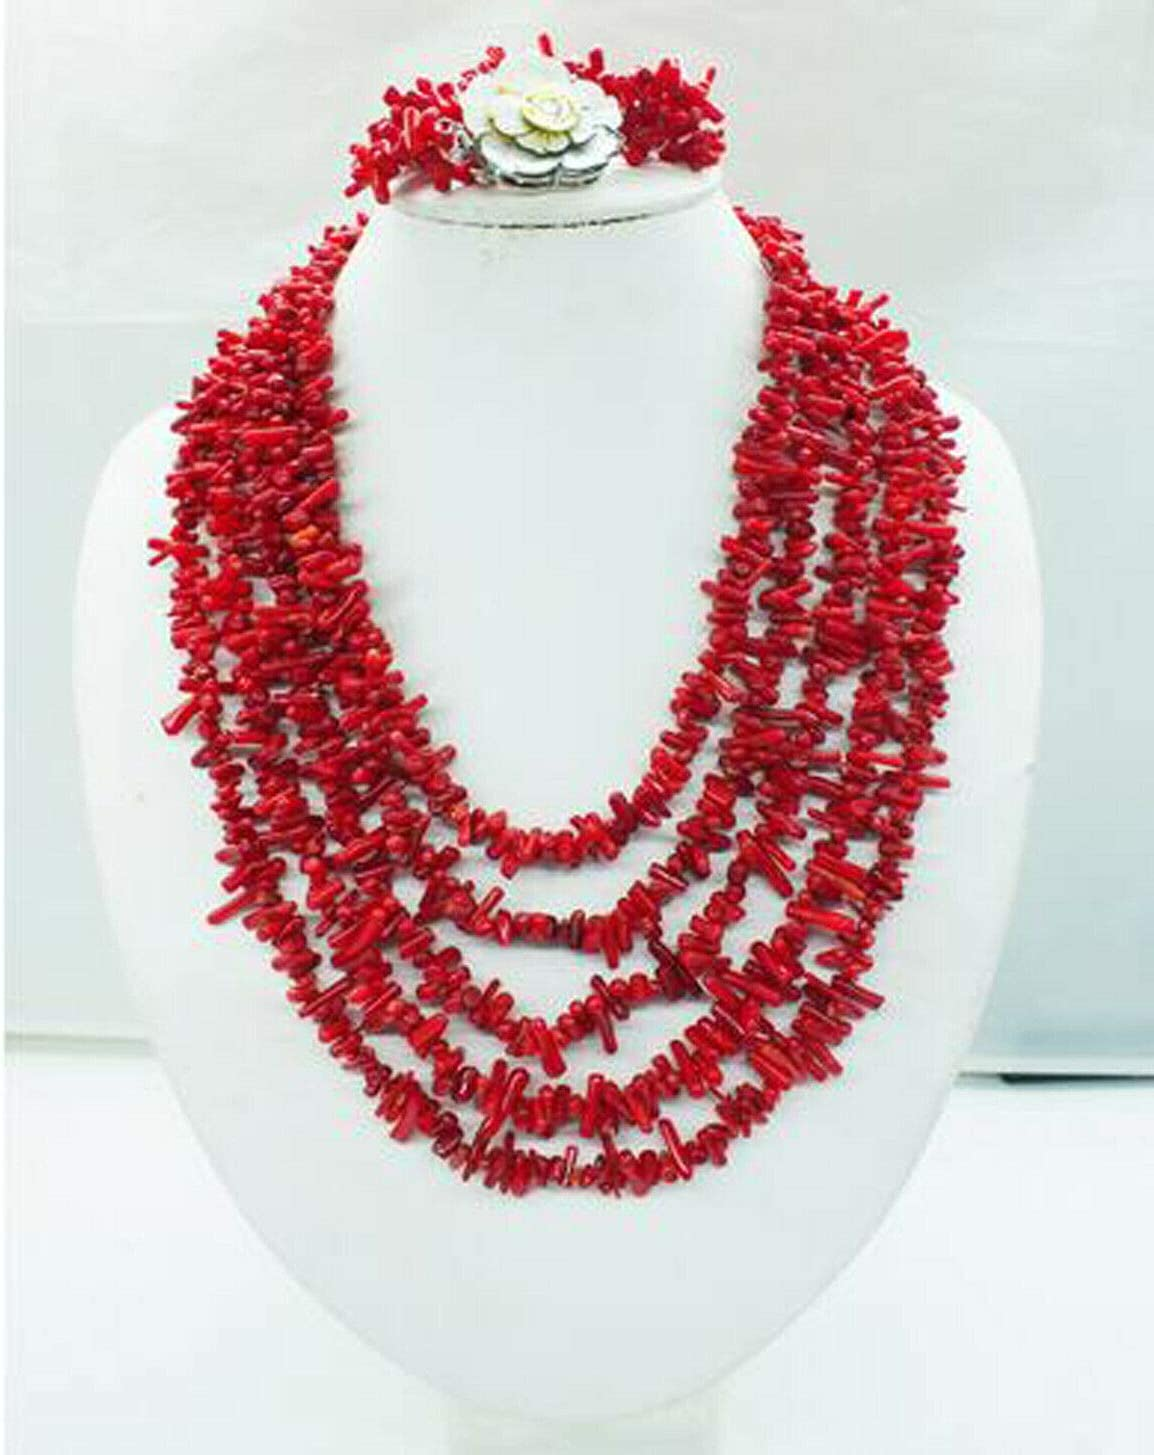 Necklaces Quality inspection Pendants 5 Rows Handmade Amazing Challenge the lowest price of Japan ☆ Branch Real Cora Red